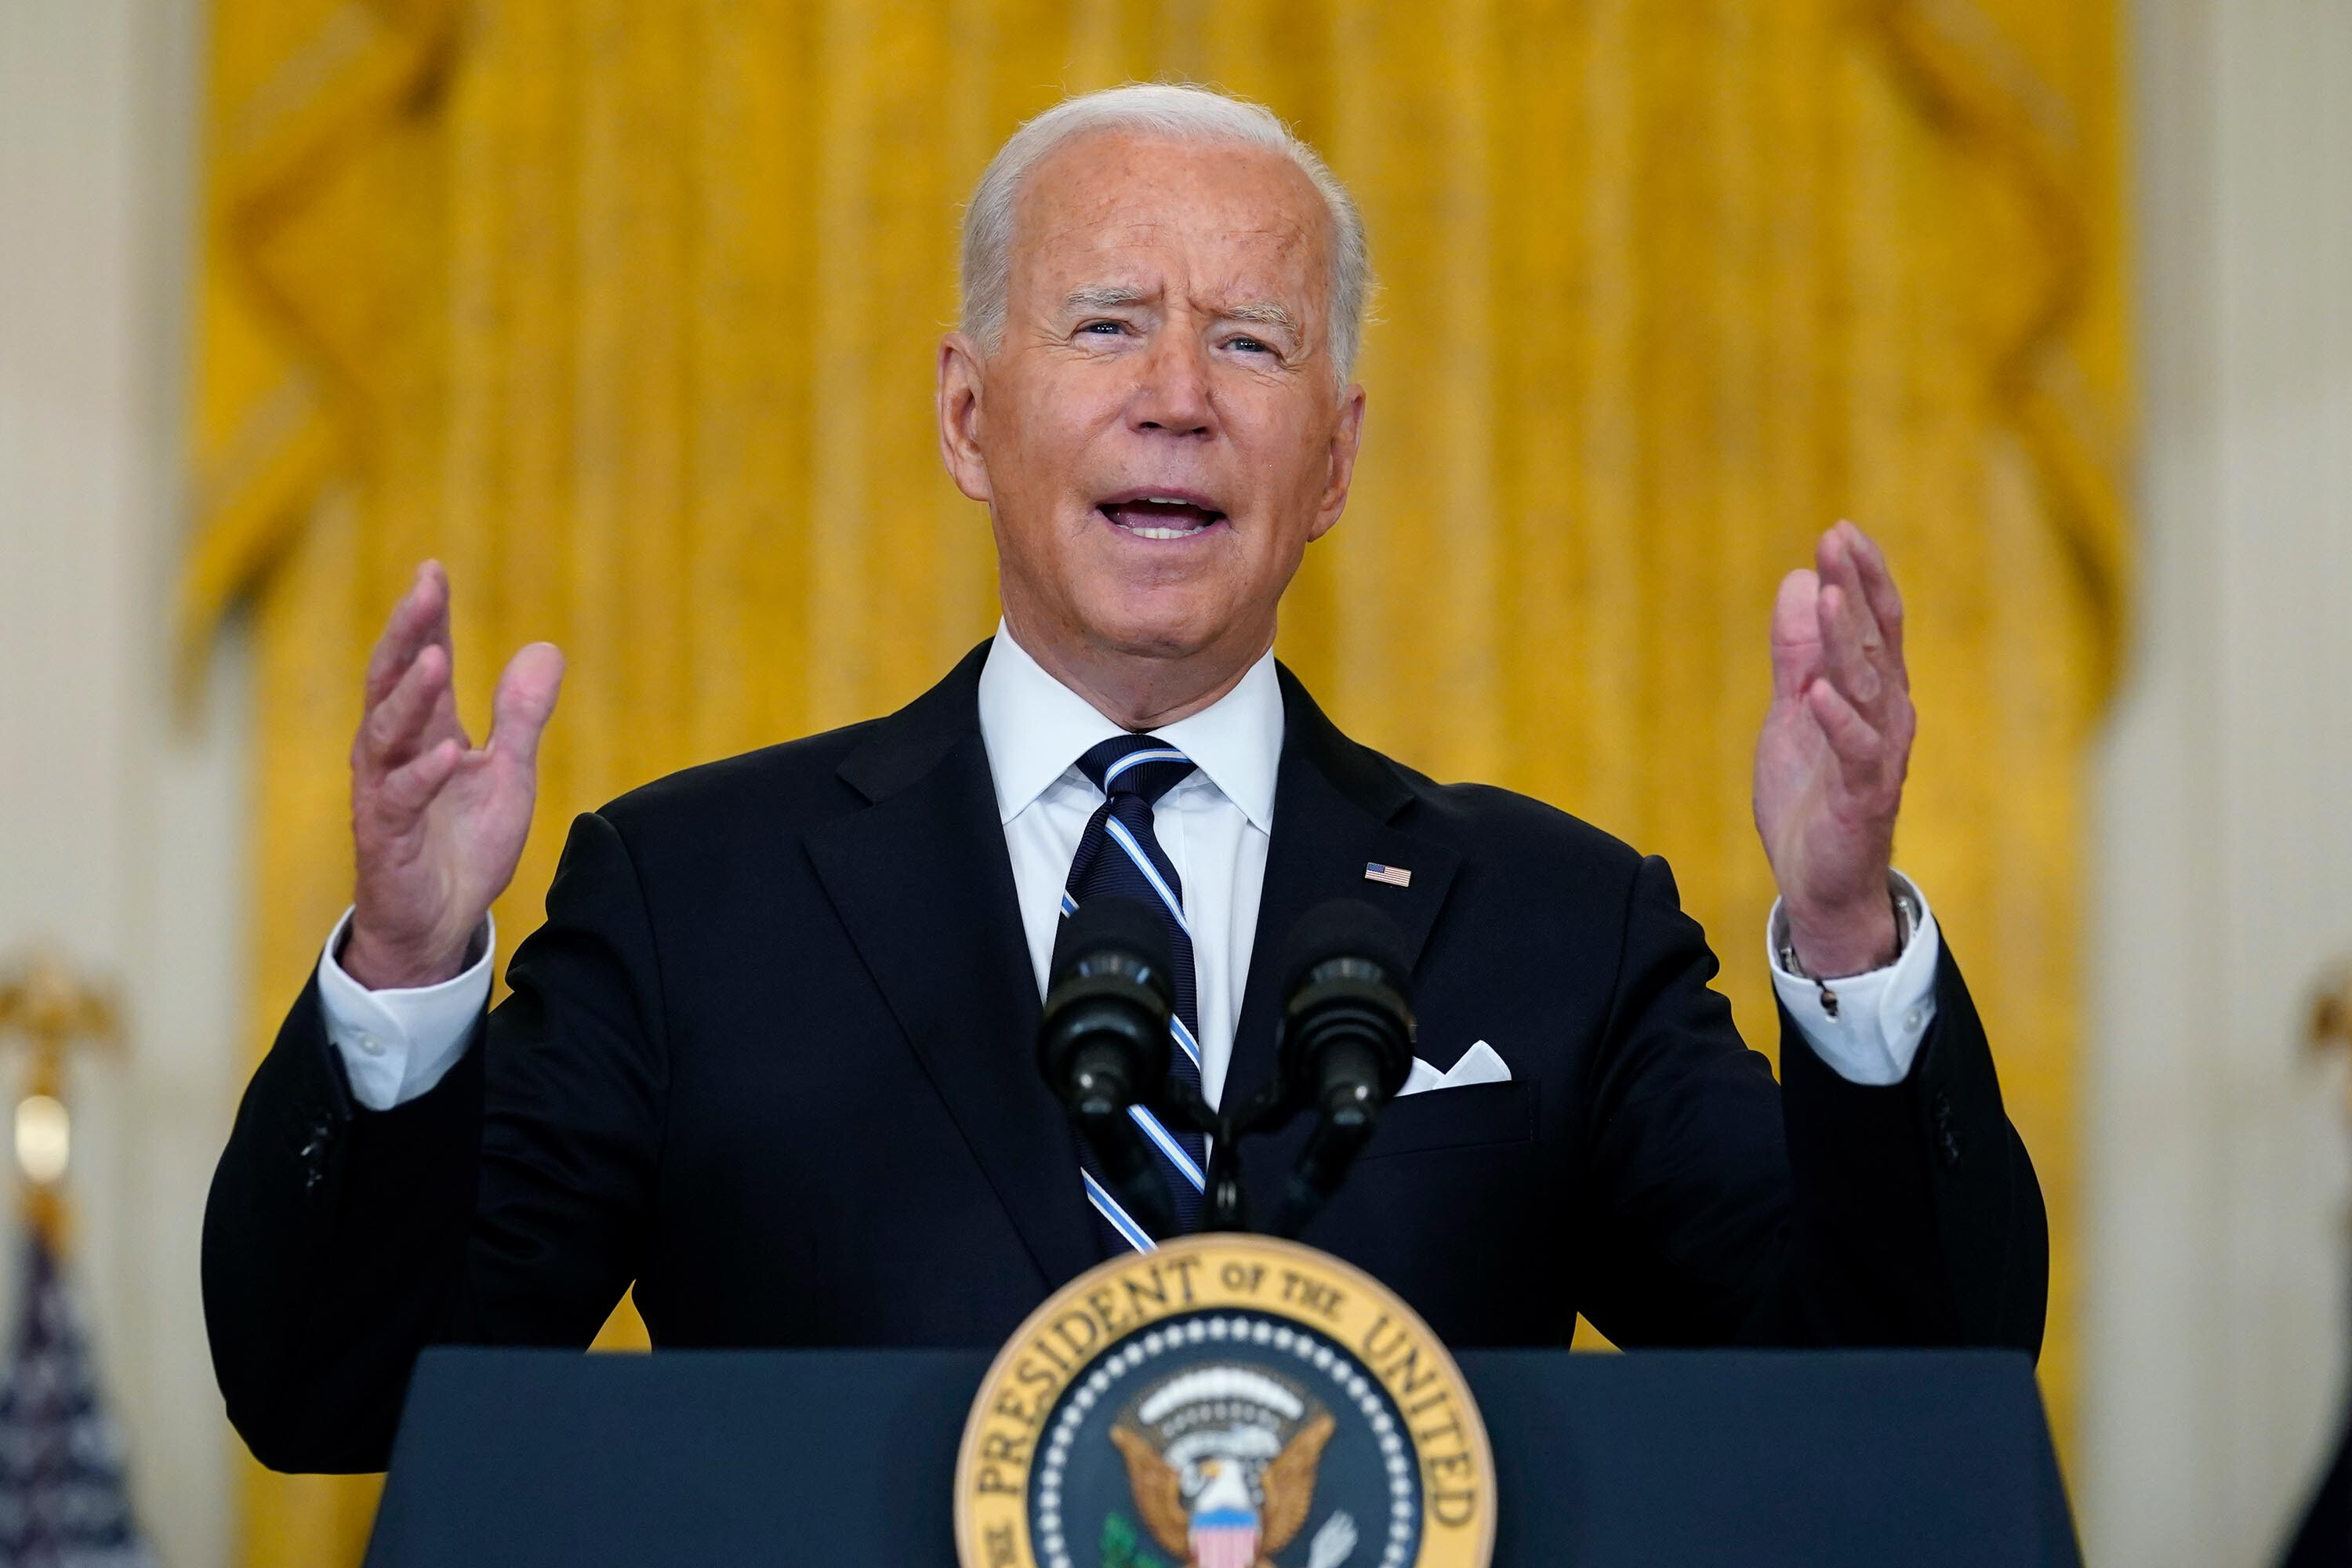 Biden suggests US troops could stay in Afghanistan past withdrawal deadline to ensure evacuation of all Americans